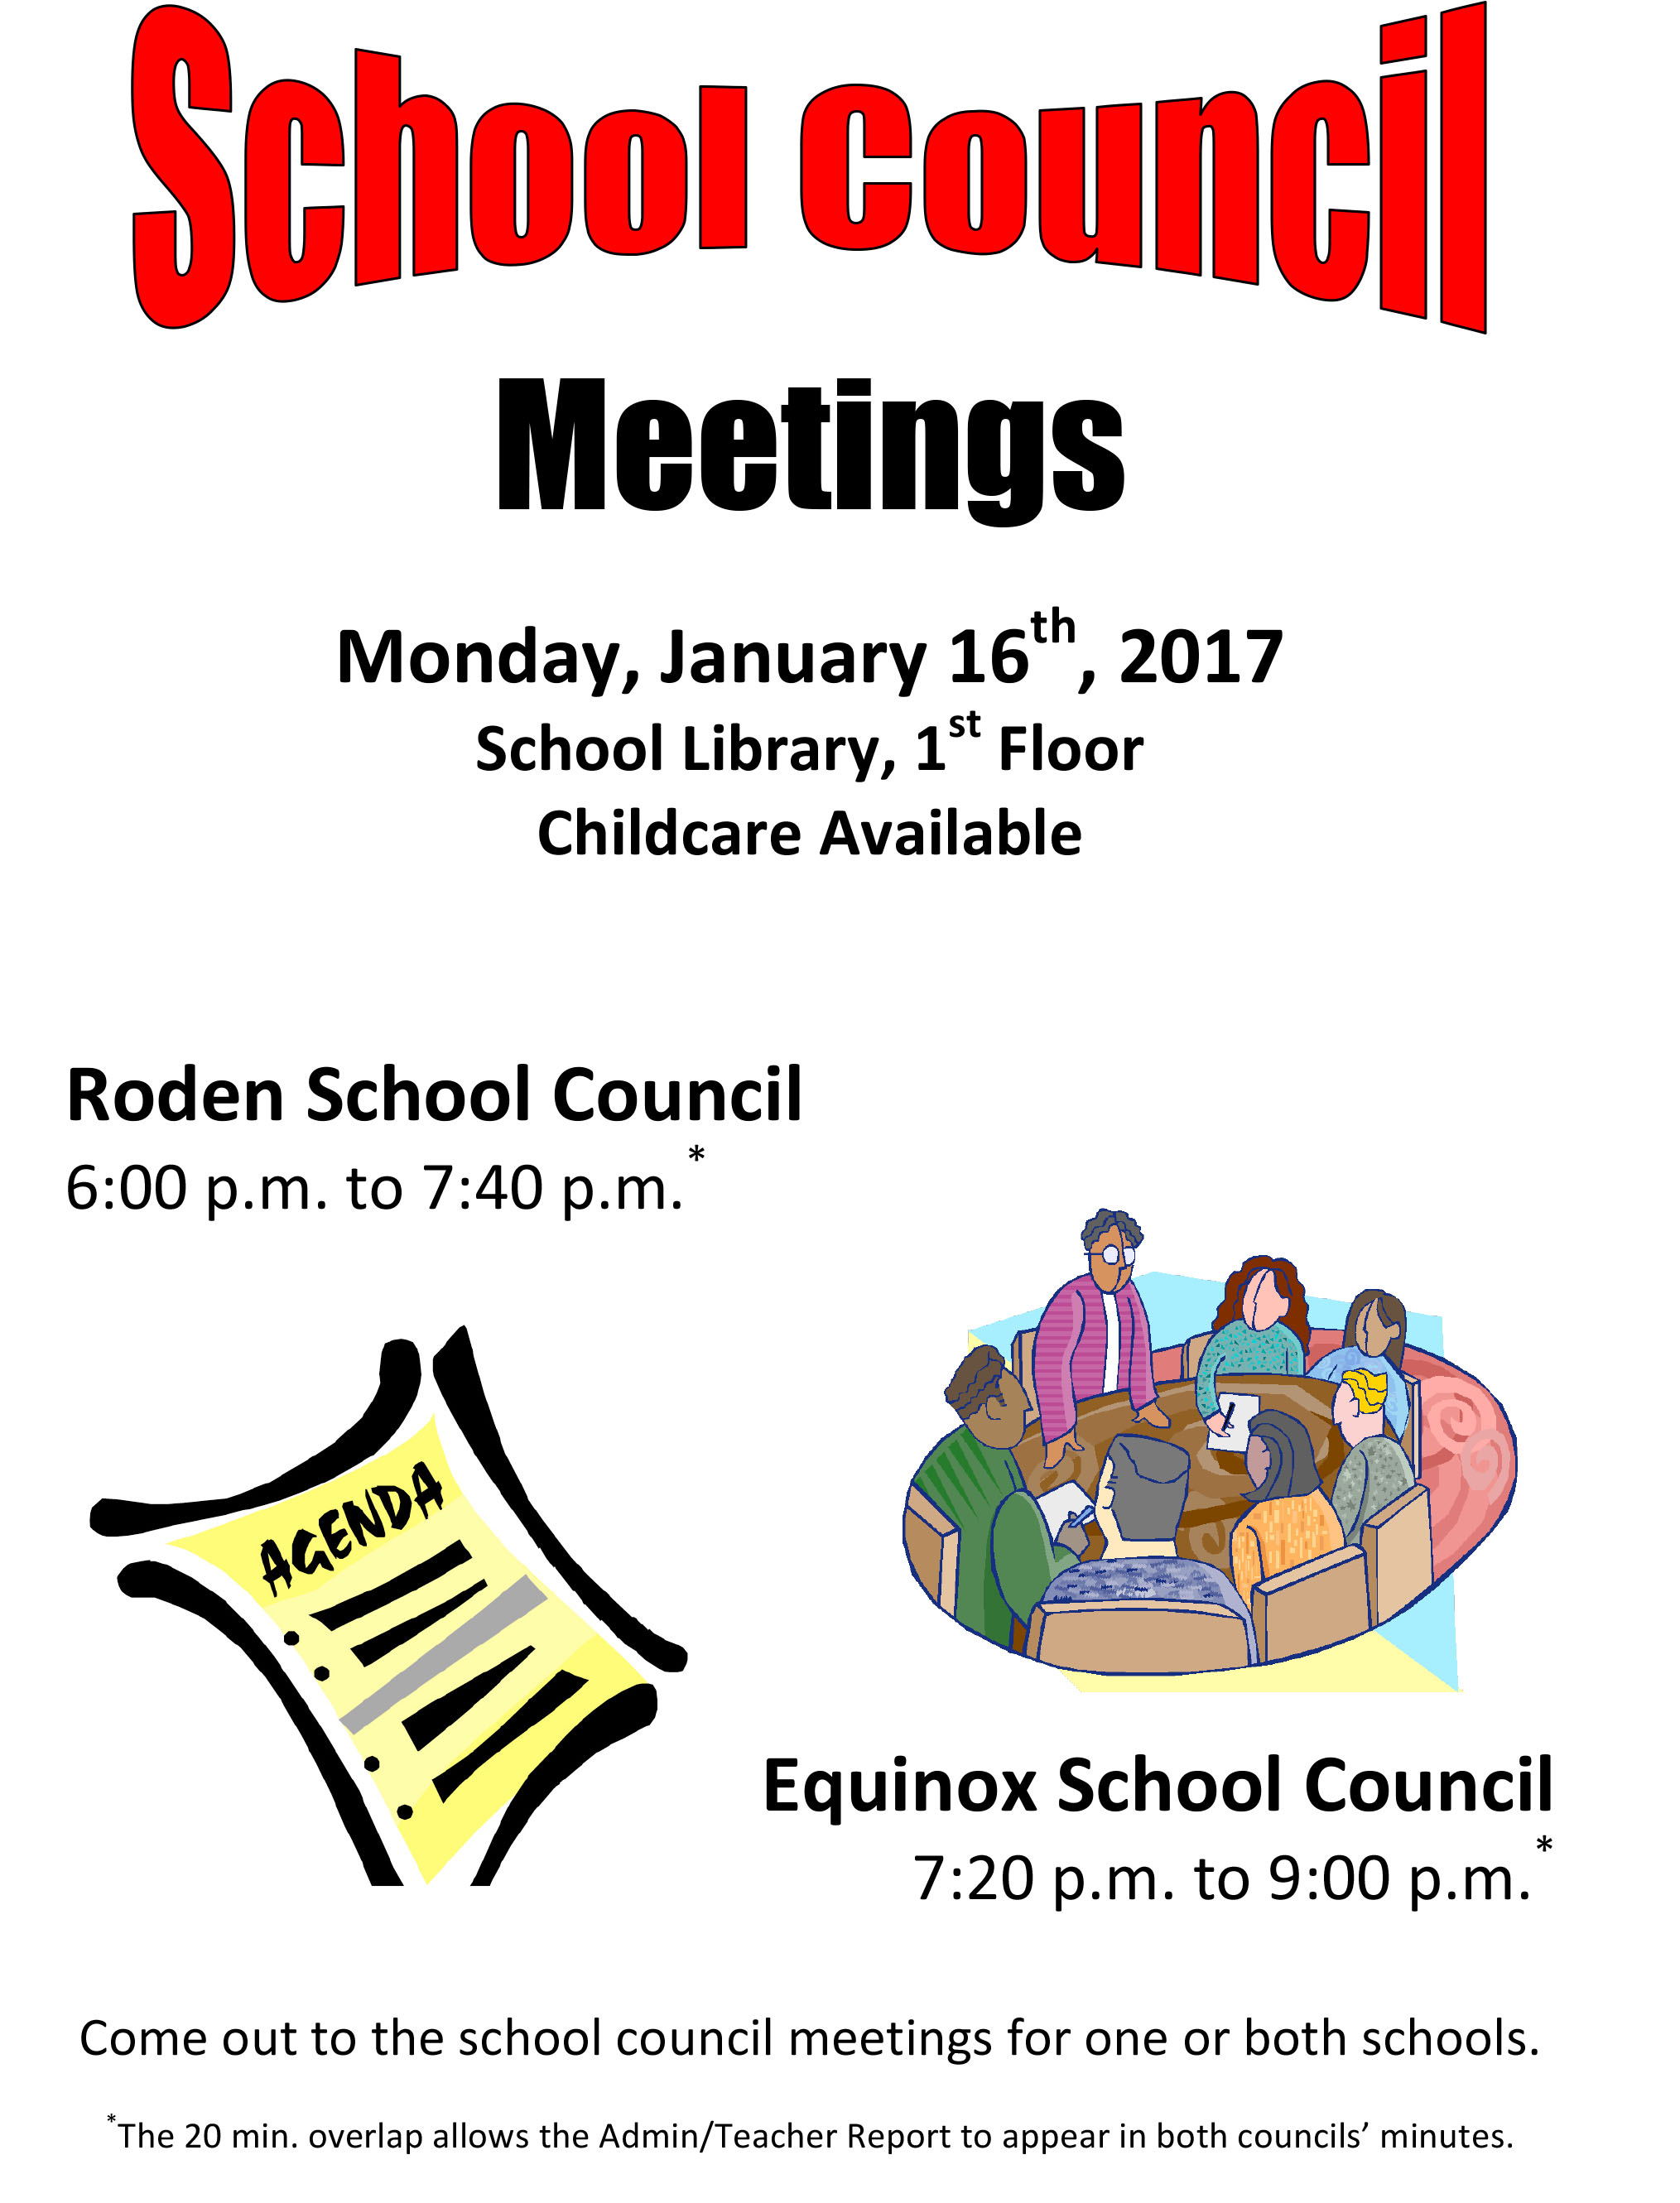 Microsoft Word - School Council Meeting Flyer Jan 16 2017 BOTH S